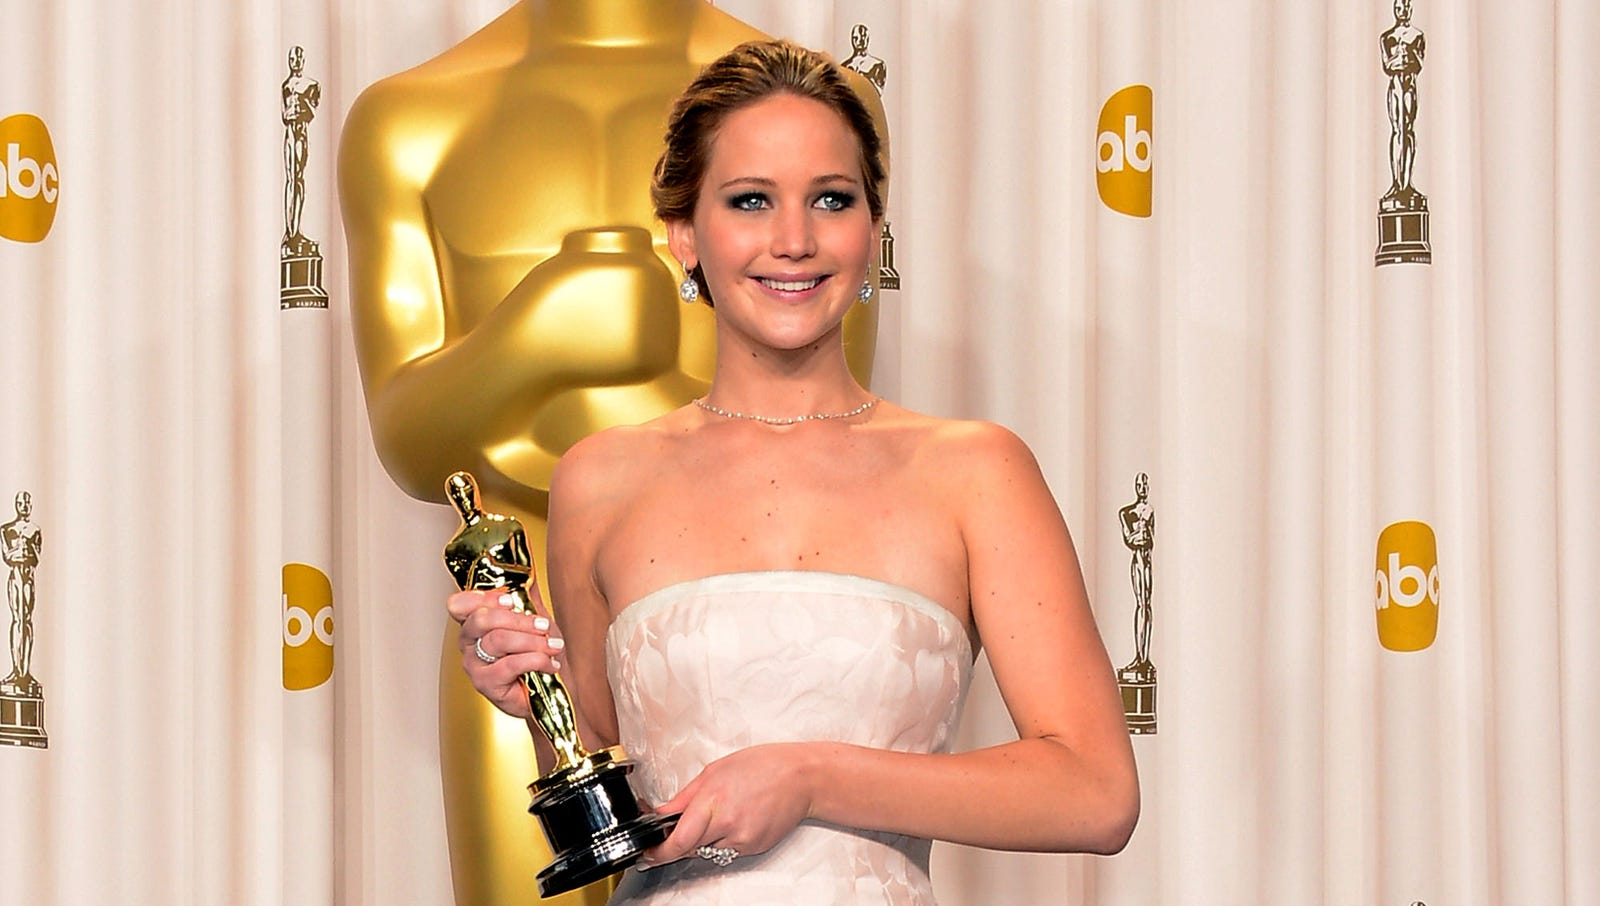 Actress Jennifer Lawrence is wearing a dress in this shot, but if she wasn't then it would be a MAJOR nip slip!